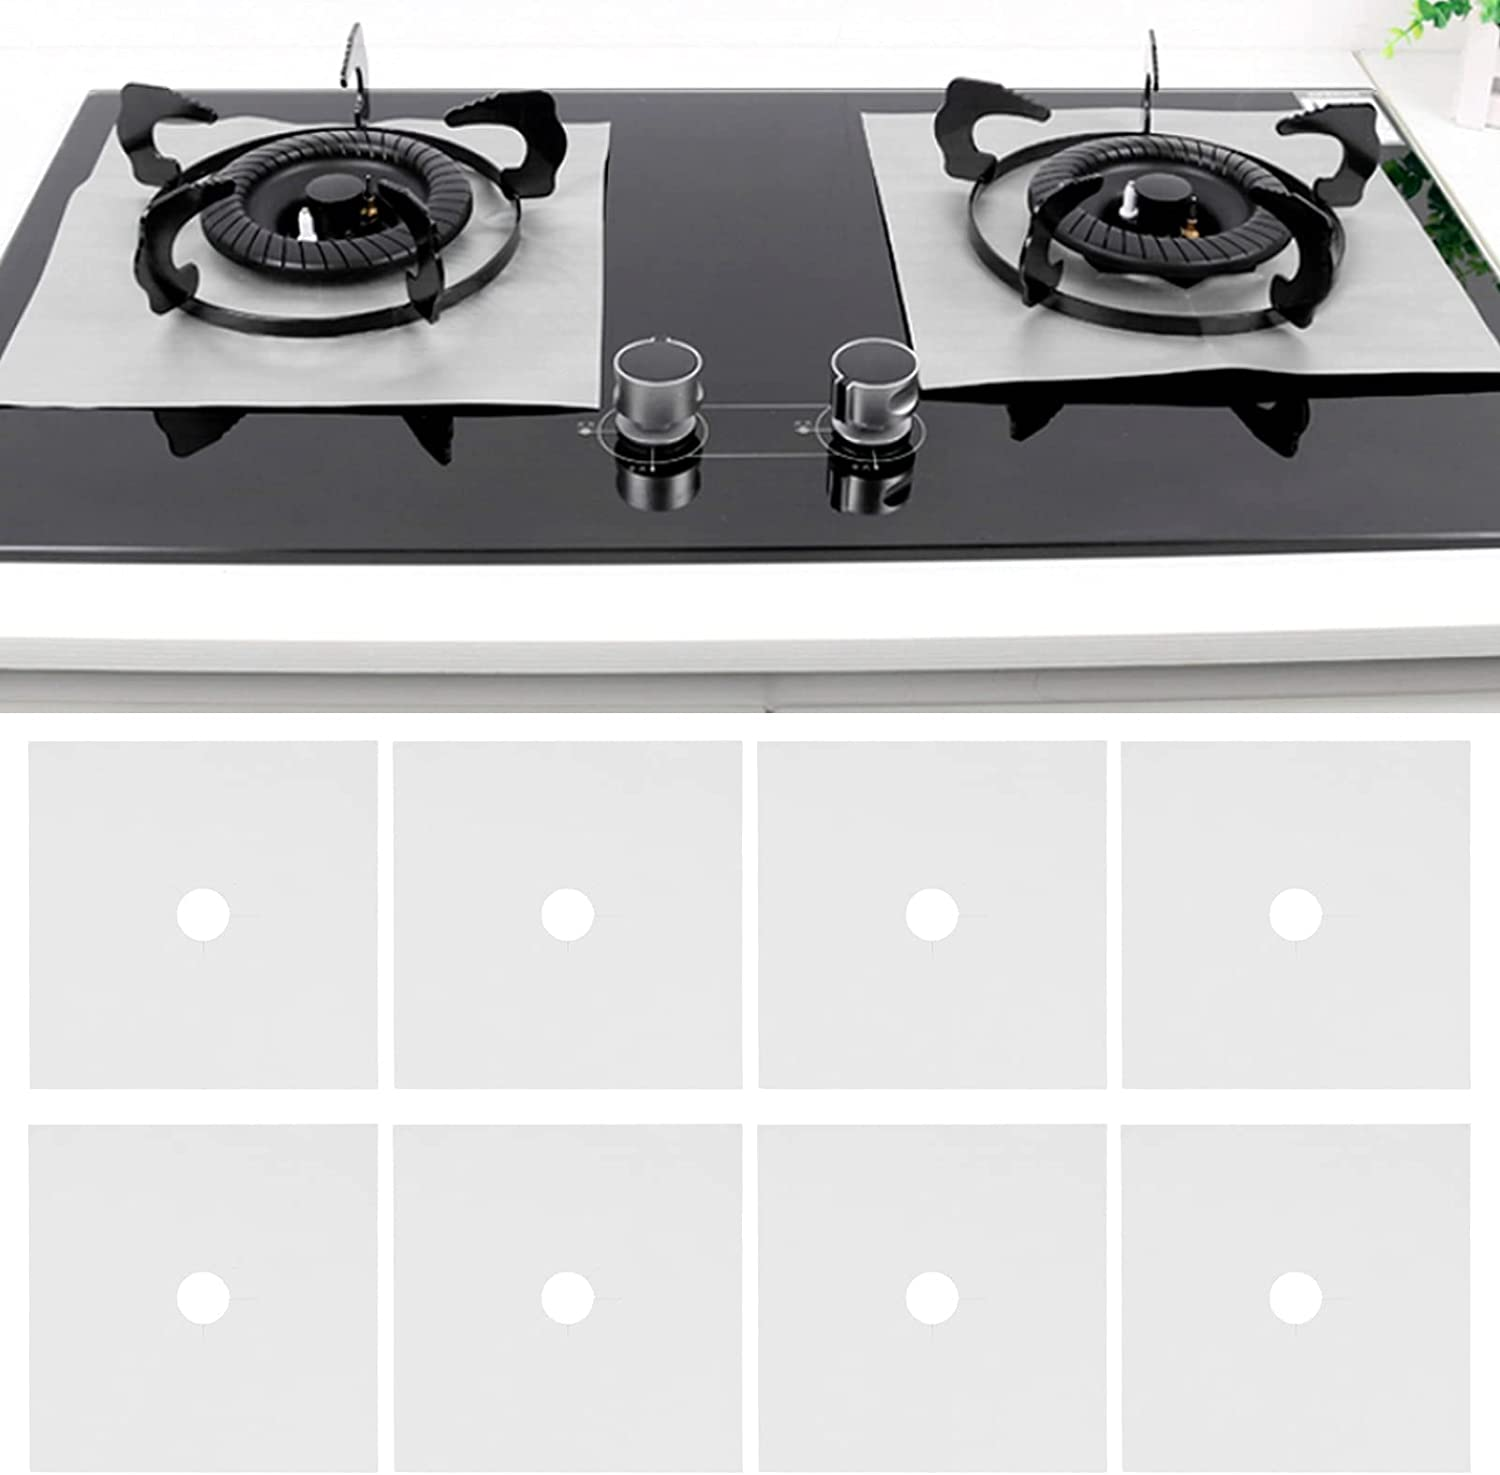 Gas Stove Pad Charlotte Mall 8PCS Stovetop Reusable Clean Max 89% OFF Cooker Protector